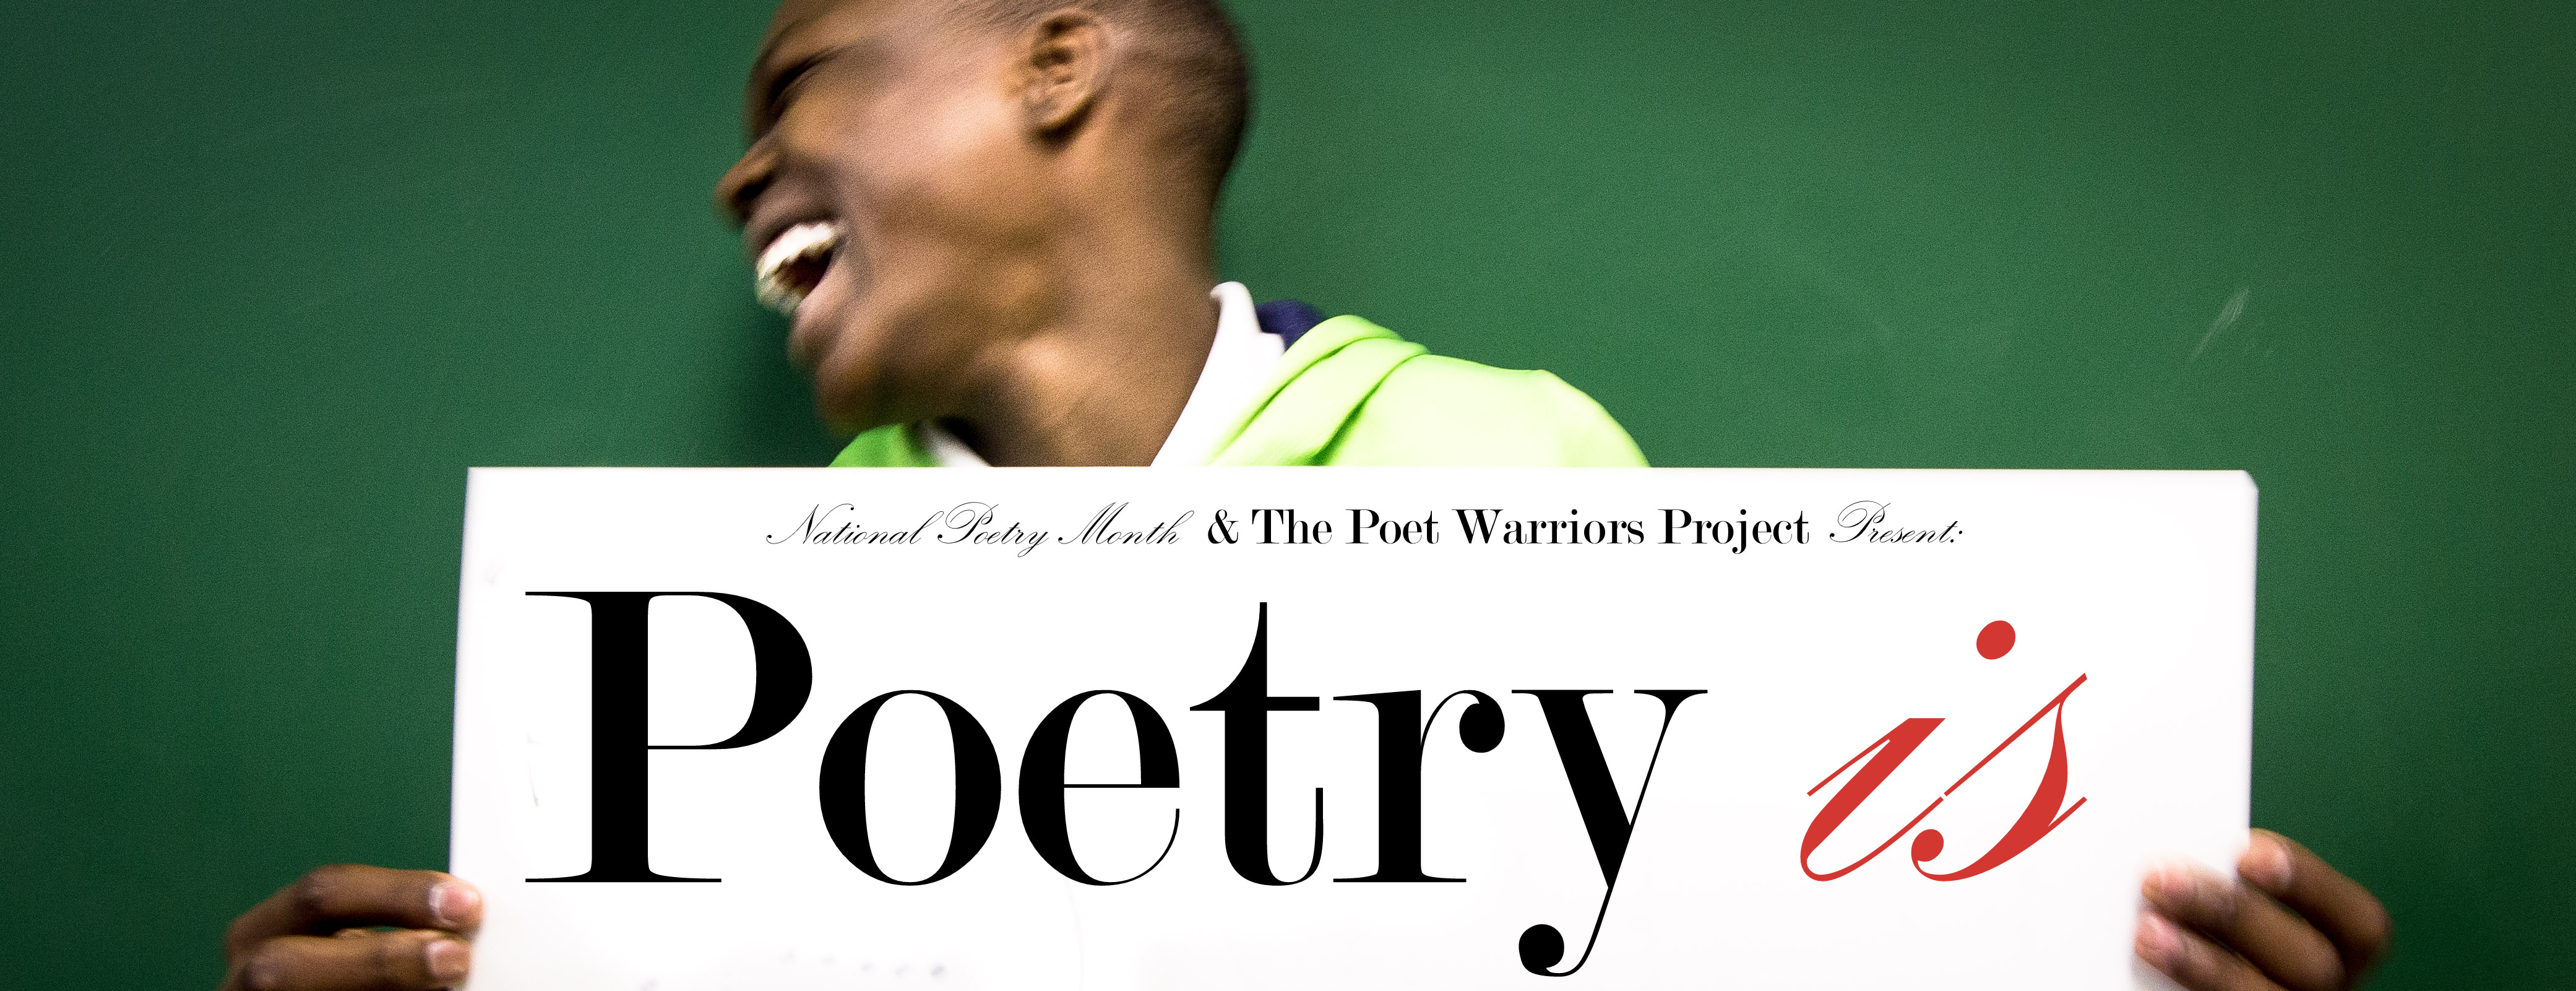 What is poetry 61